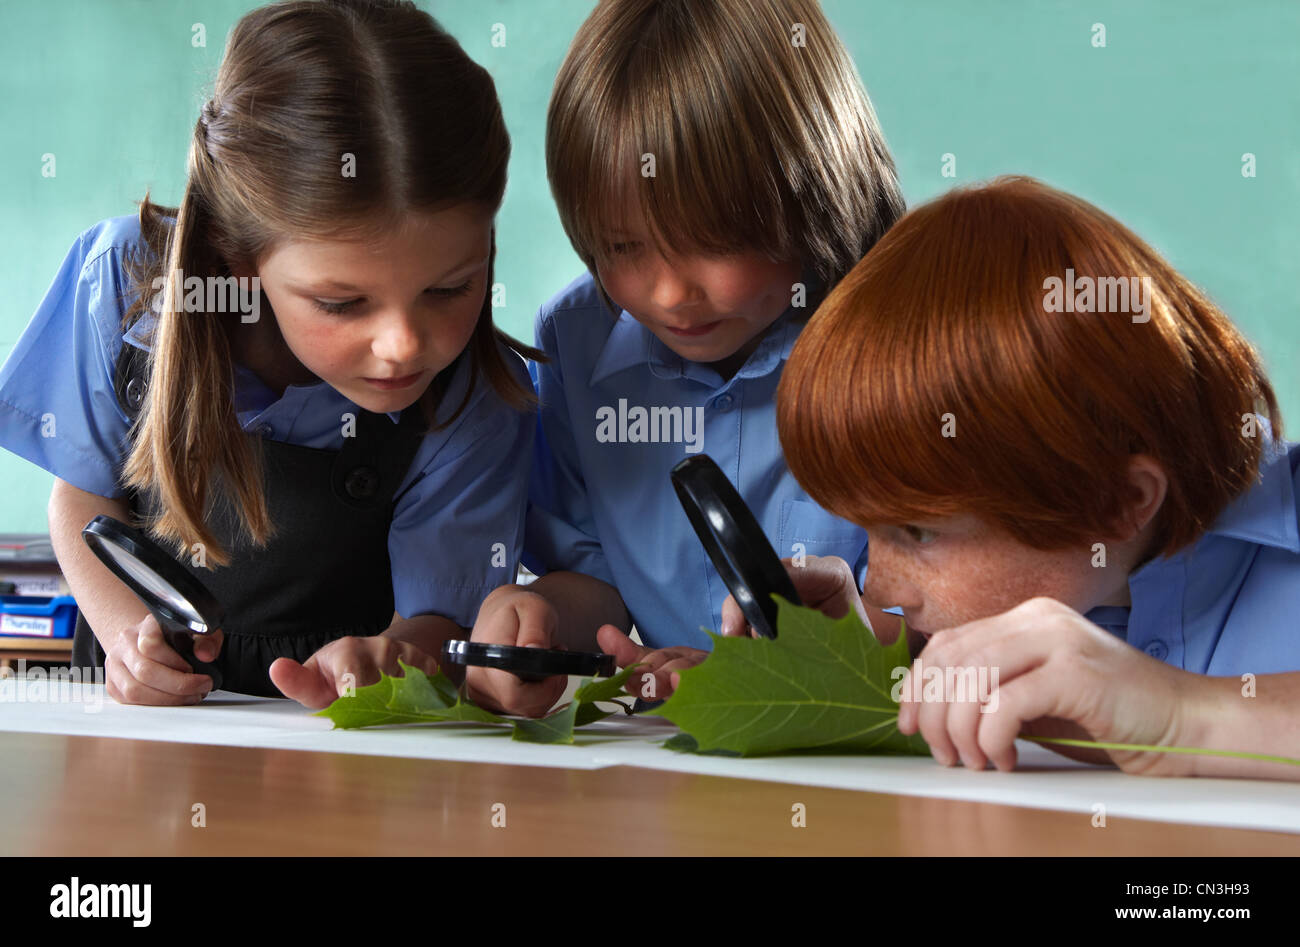 School children studying leaves with magnifying glasses in a classroom - Stock Image